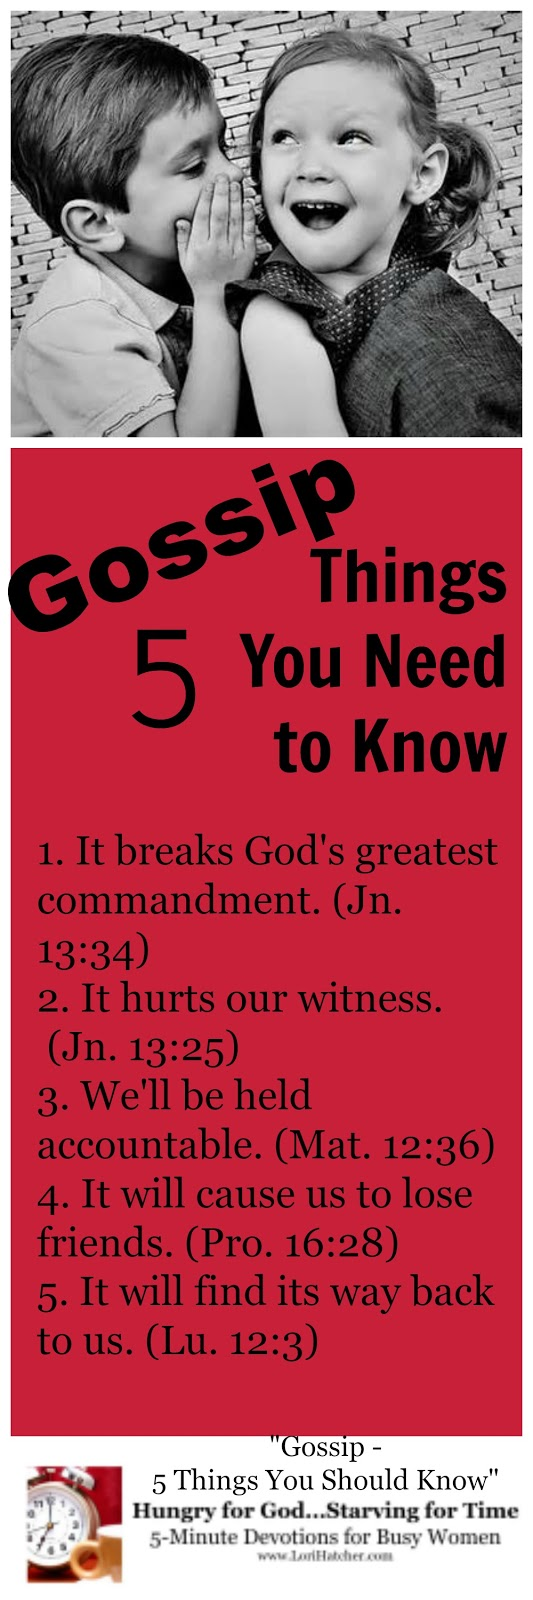 Hungry for God: Gossip - 5 Things You Need to Know